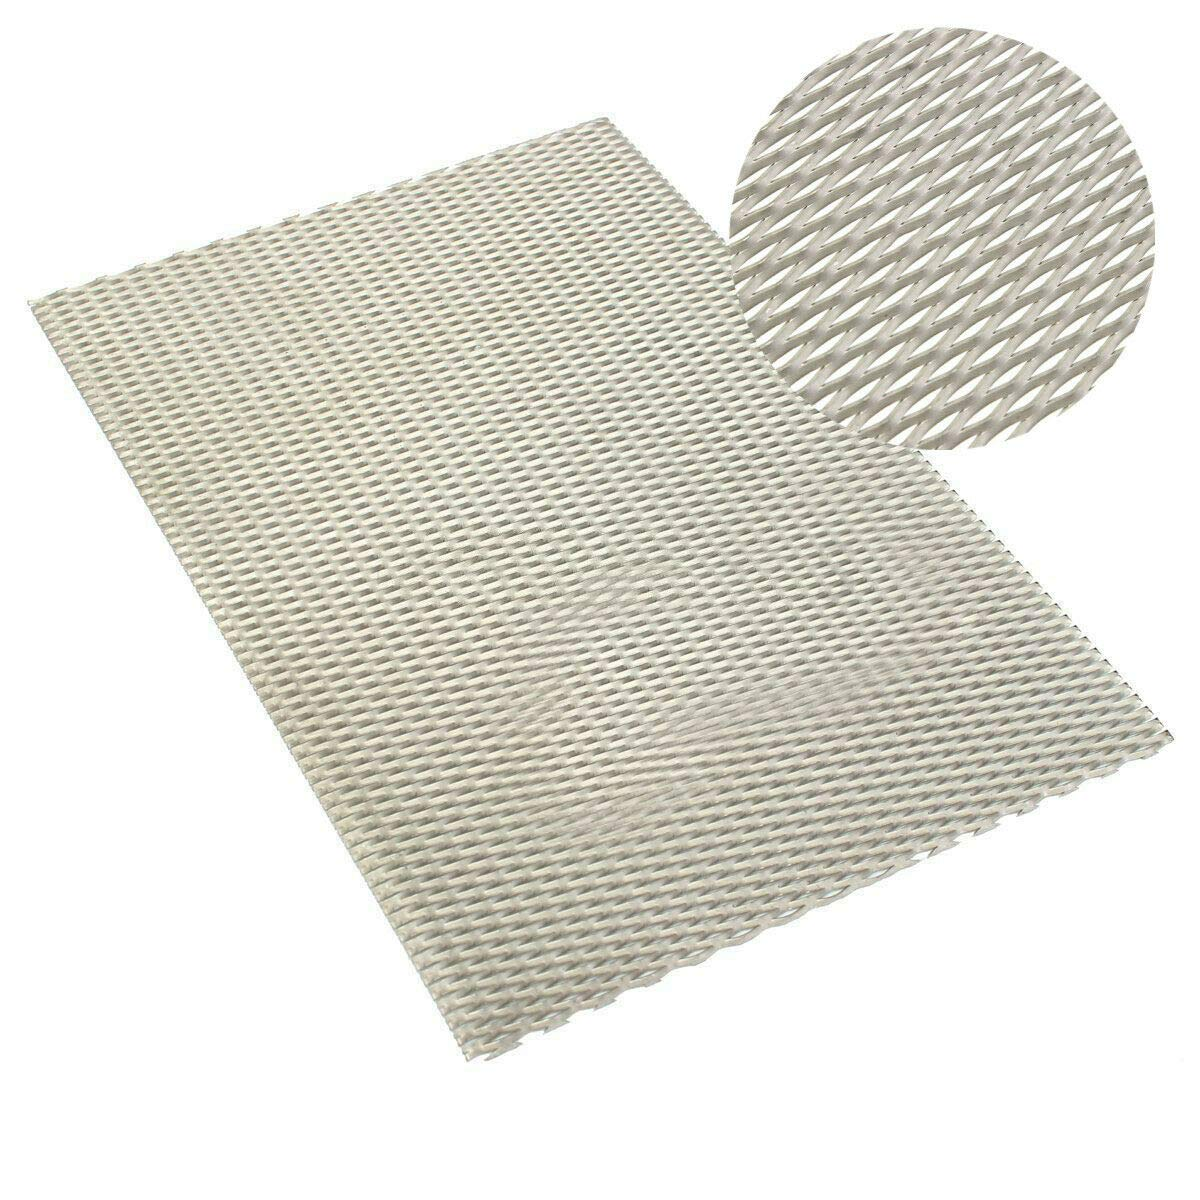 Manoch Titanium Metal Grade Mesh Perforated Diamond Holes Expanded 300x200x0.5mm Titanium Mesh Levels: Aerospace, Shipbuilding, Chemical Machinery, High-Temperature Vacuum Equipment, Power US Stock by Manoch